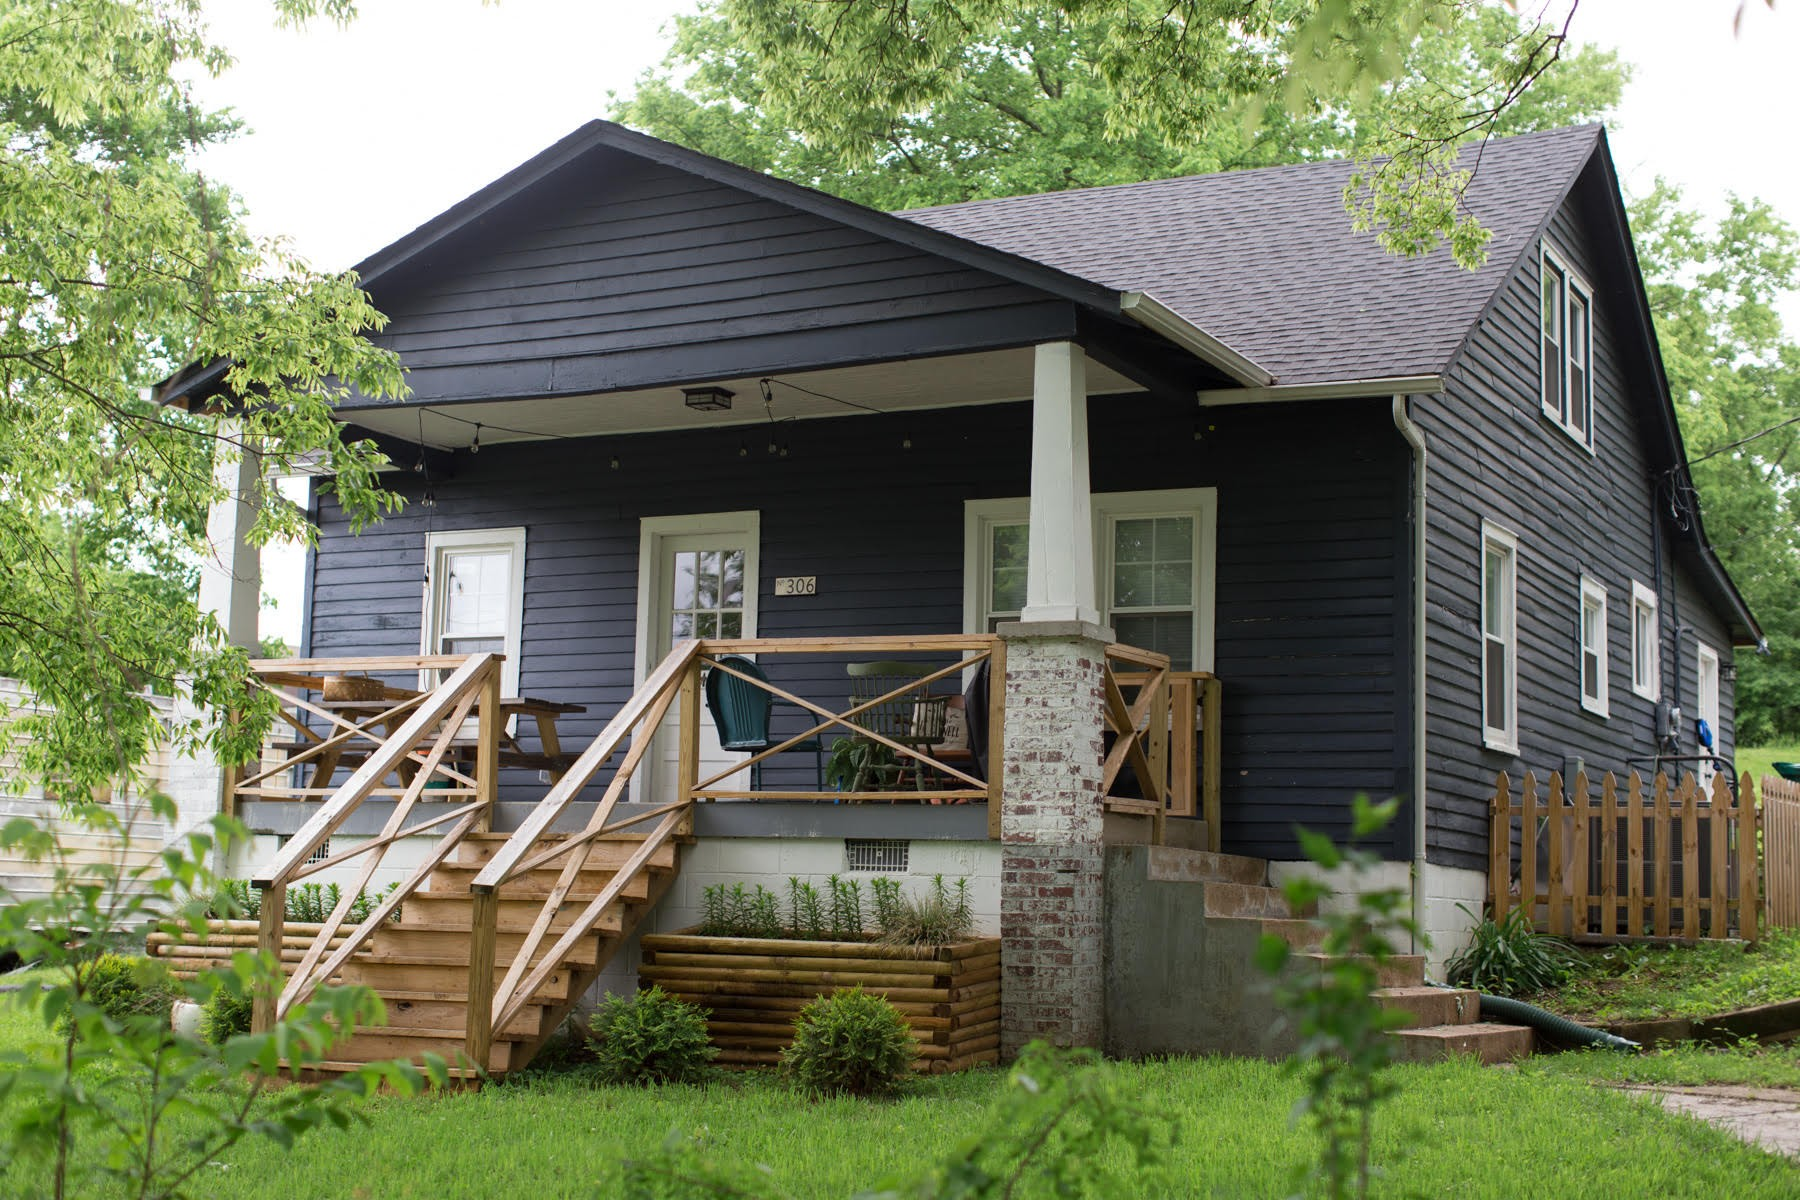 306 E St Property Photo - Clarksville, TN real estate listing